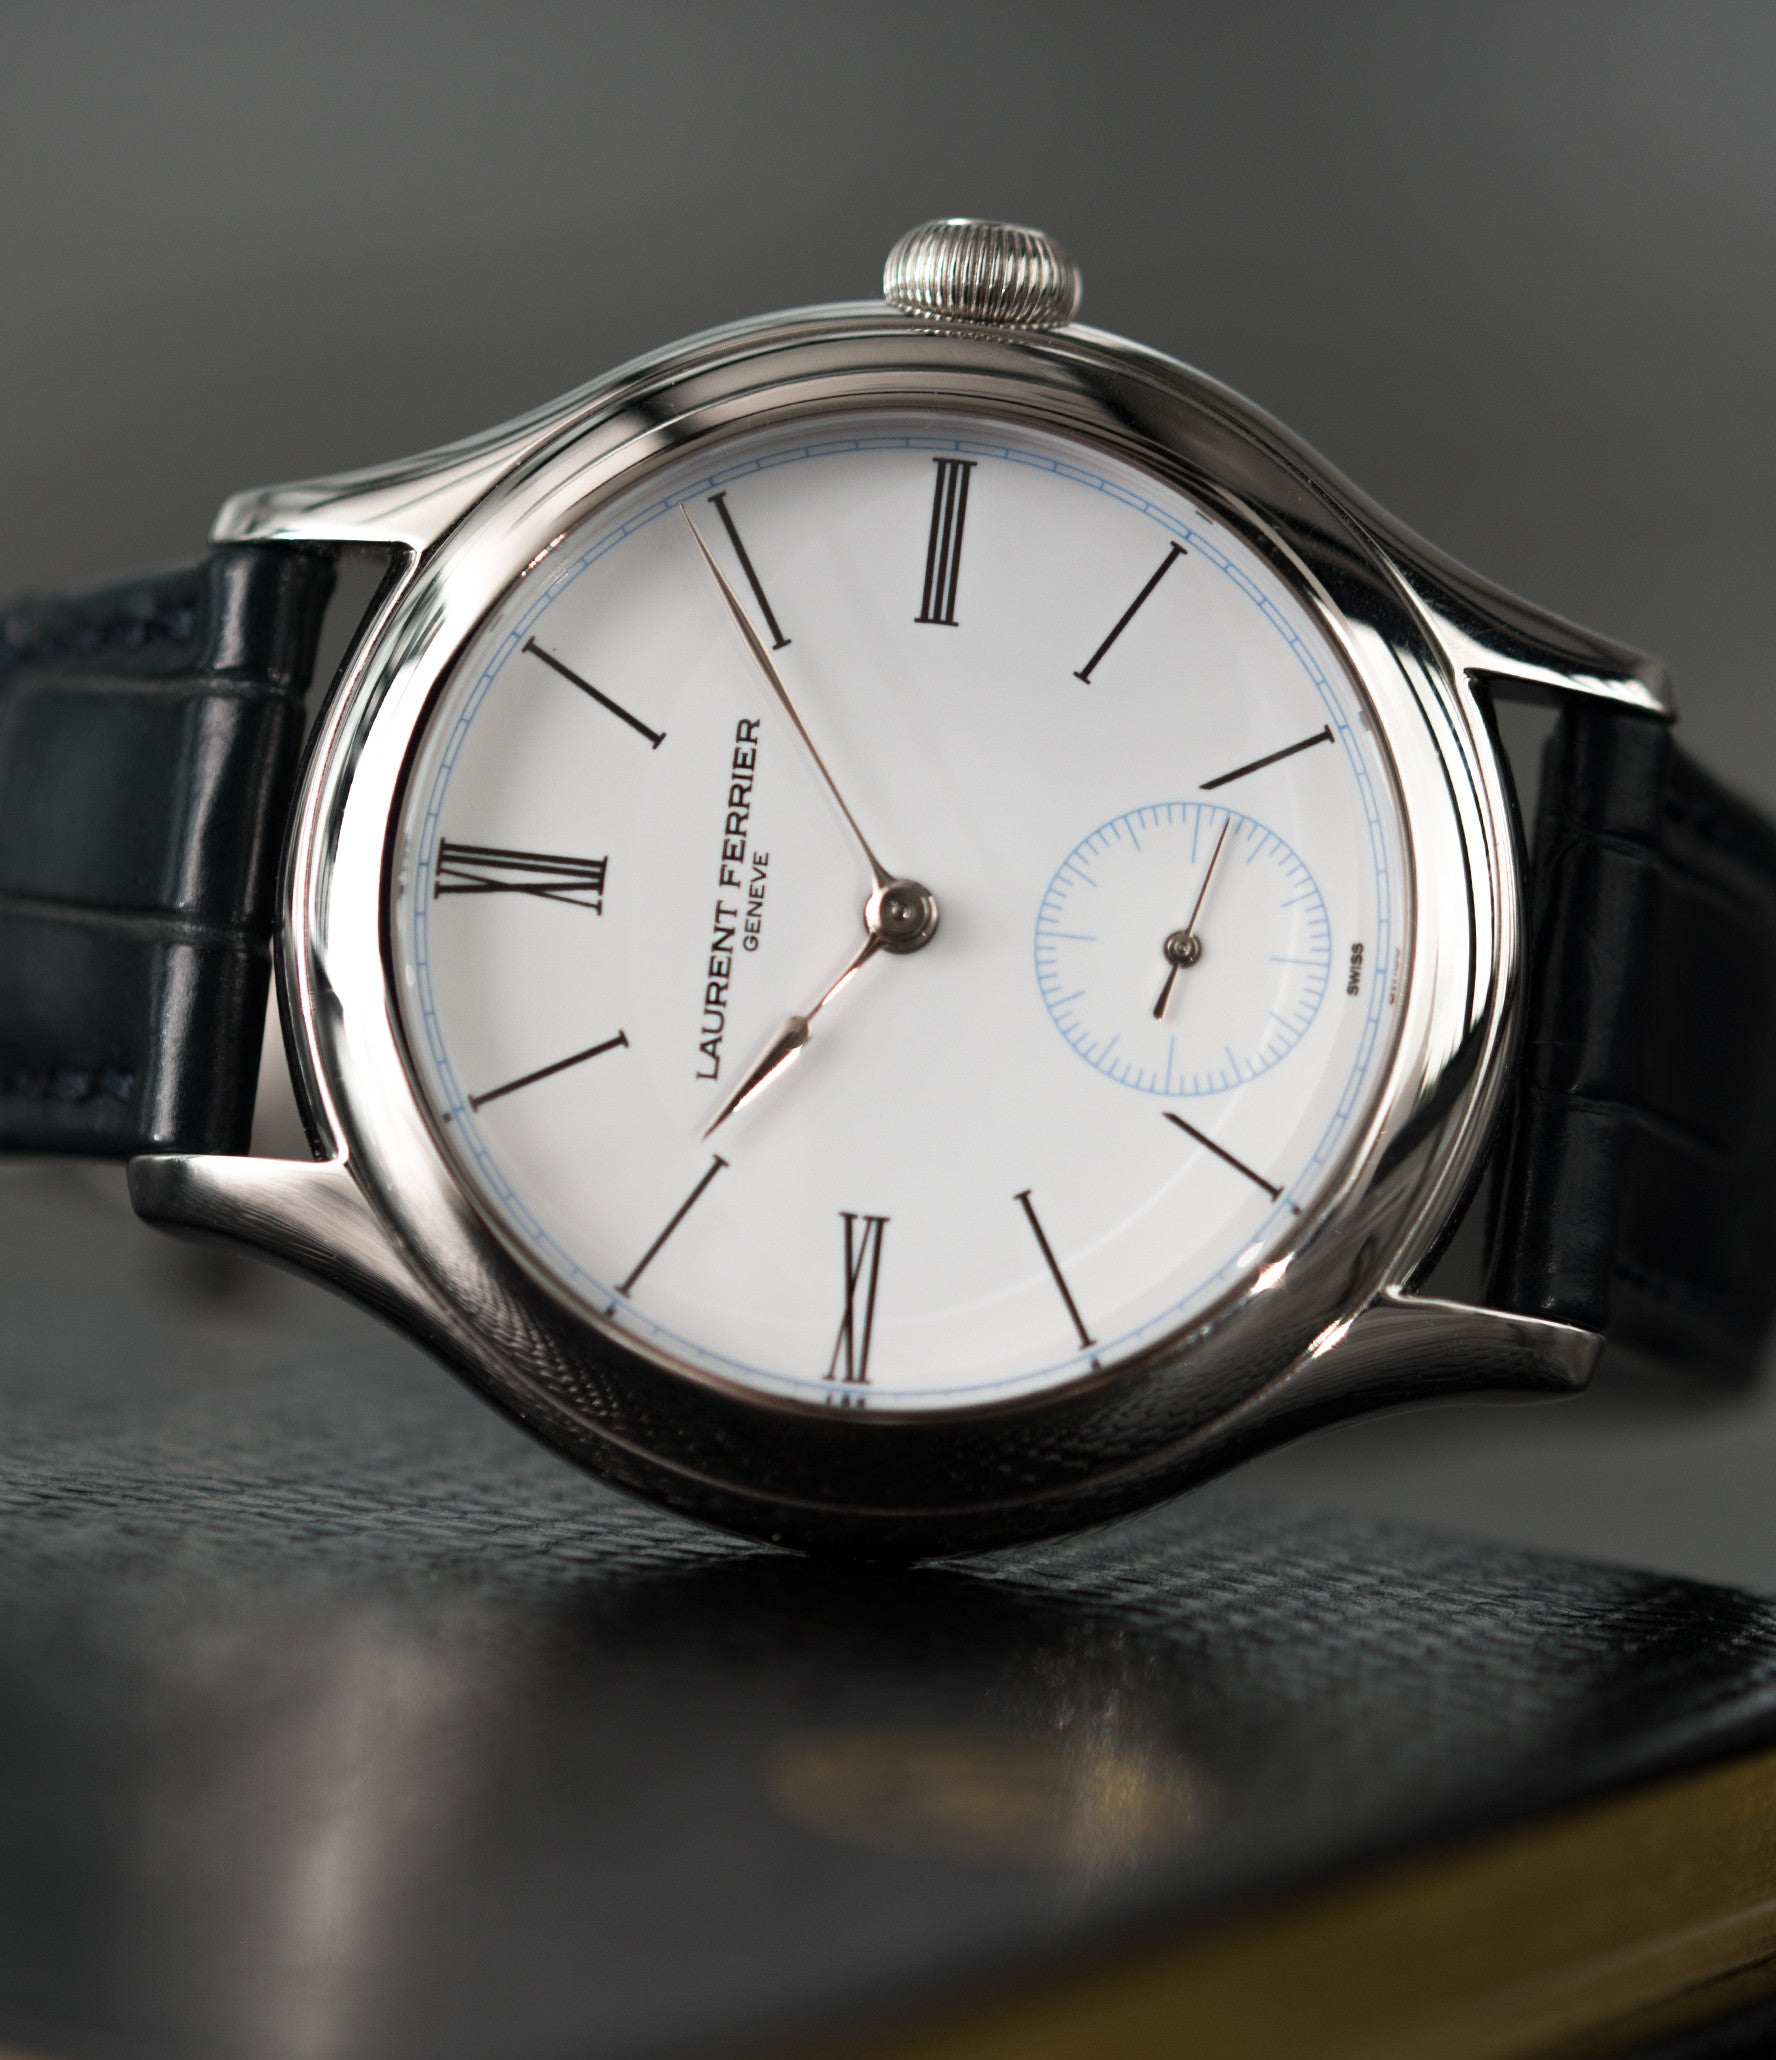 selling platinum Laurent Ferrier Galet Micro-rotor LCF006 white enamel dial limited edition watch for sale online at A Collected Man London specialist independent watchmakers